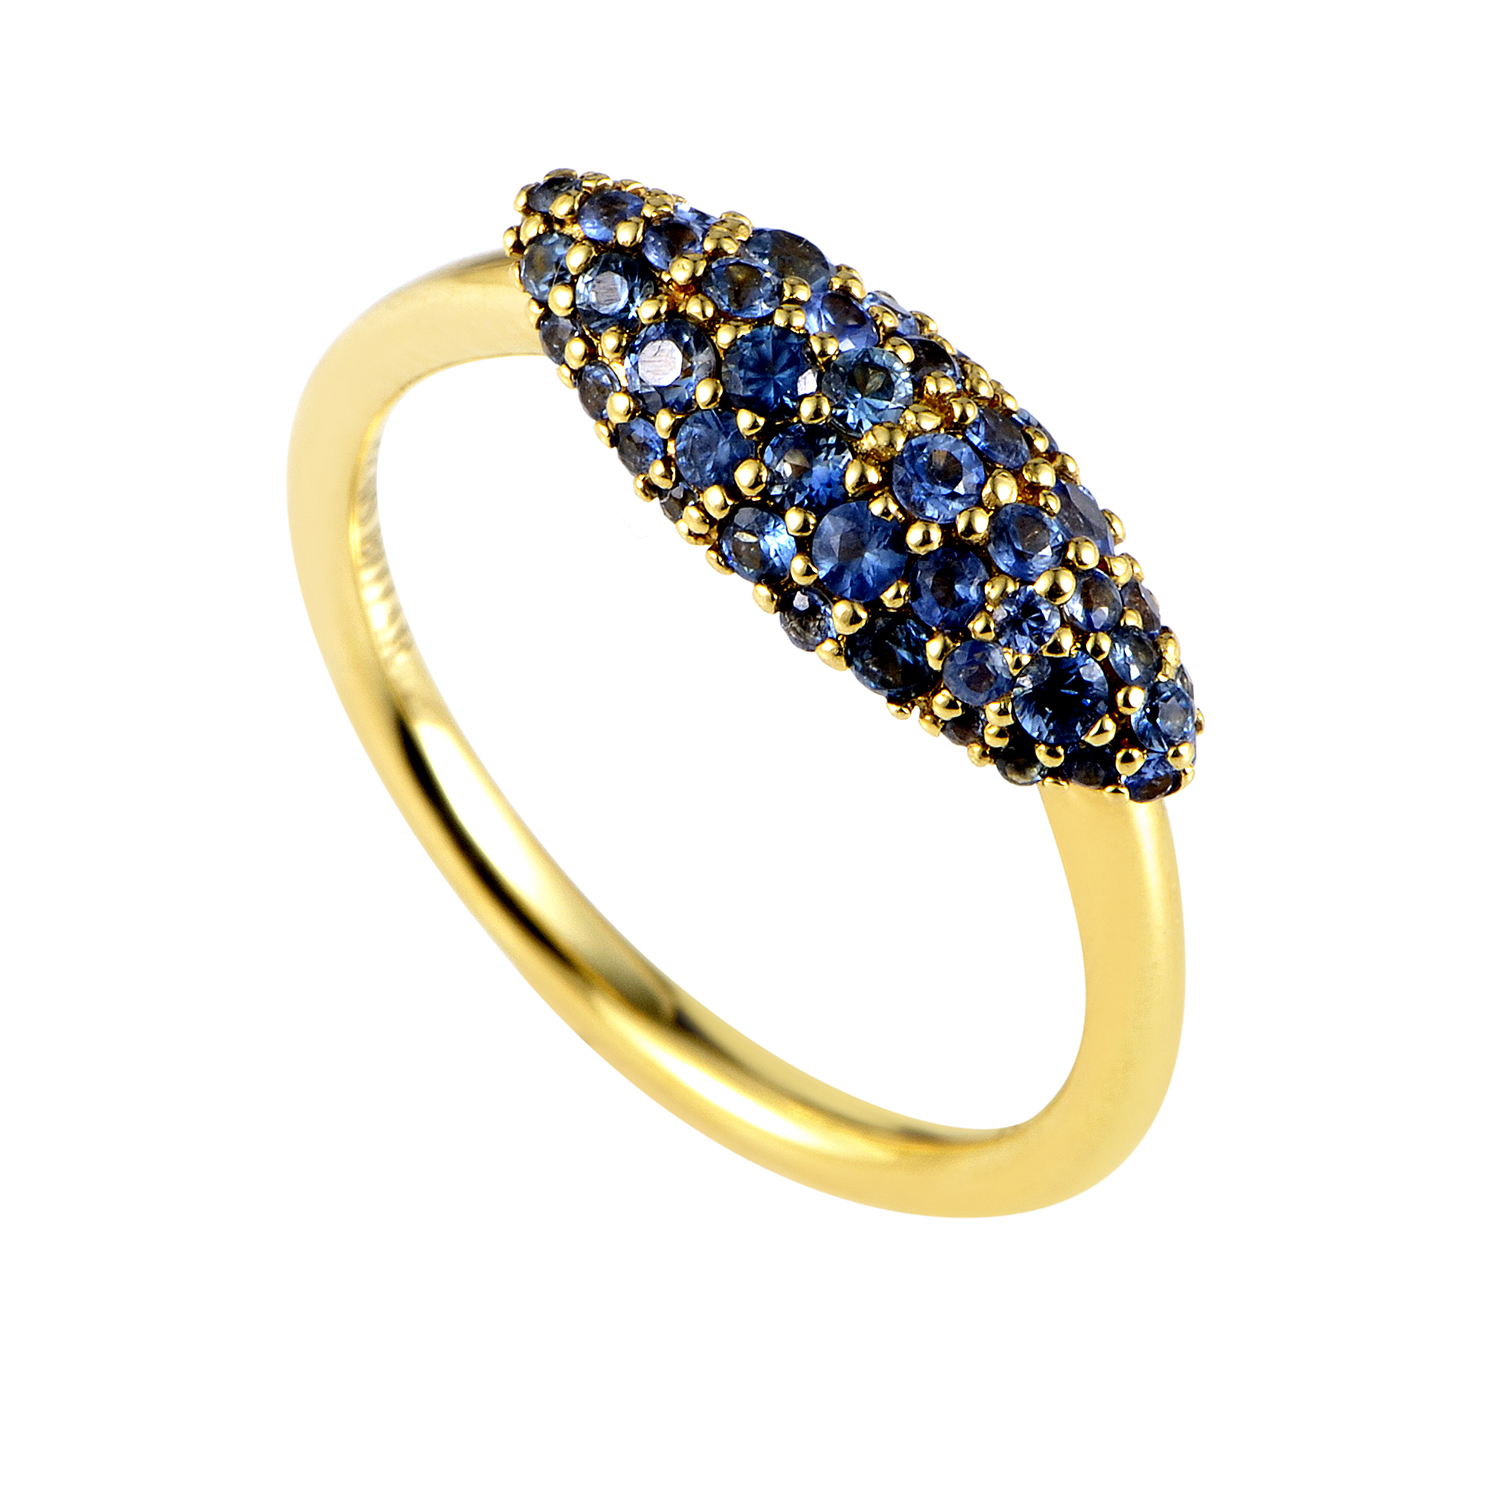 Marquis 18K Yellow Gold Sapphire Pave Ring FN41R0048